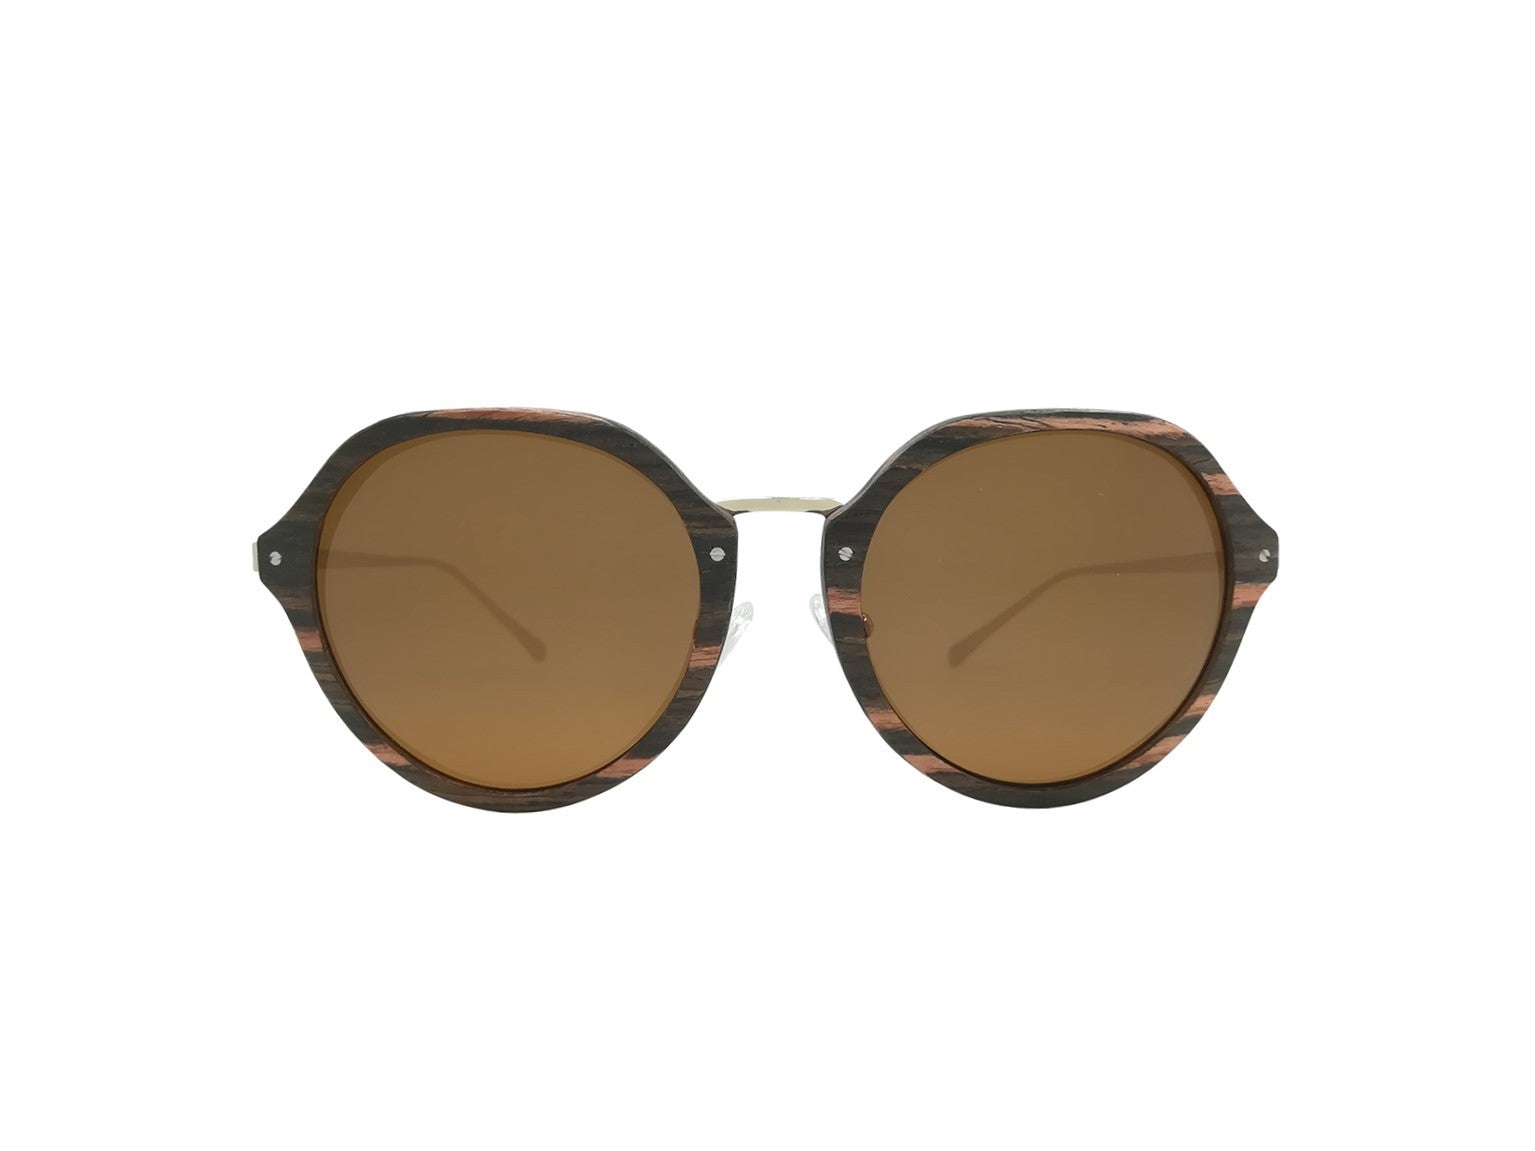 Ebony Wood Pembroke Octagonal Sunglasses